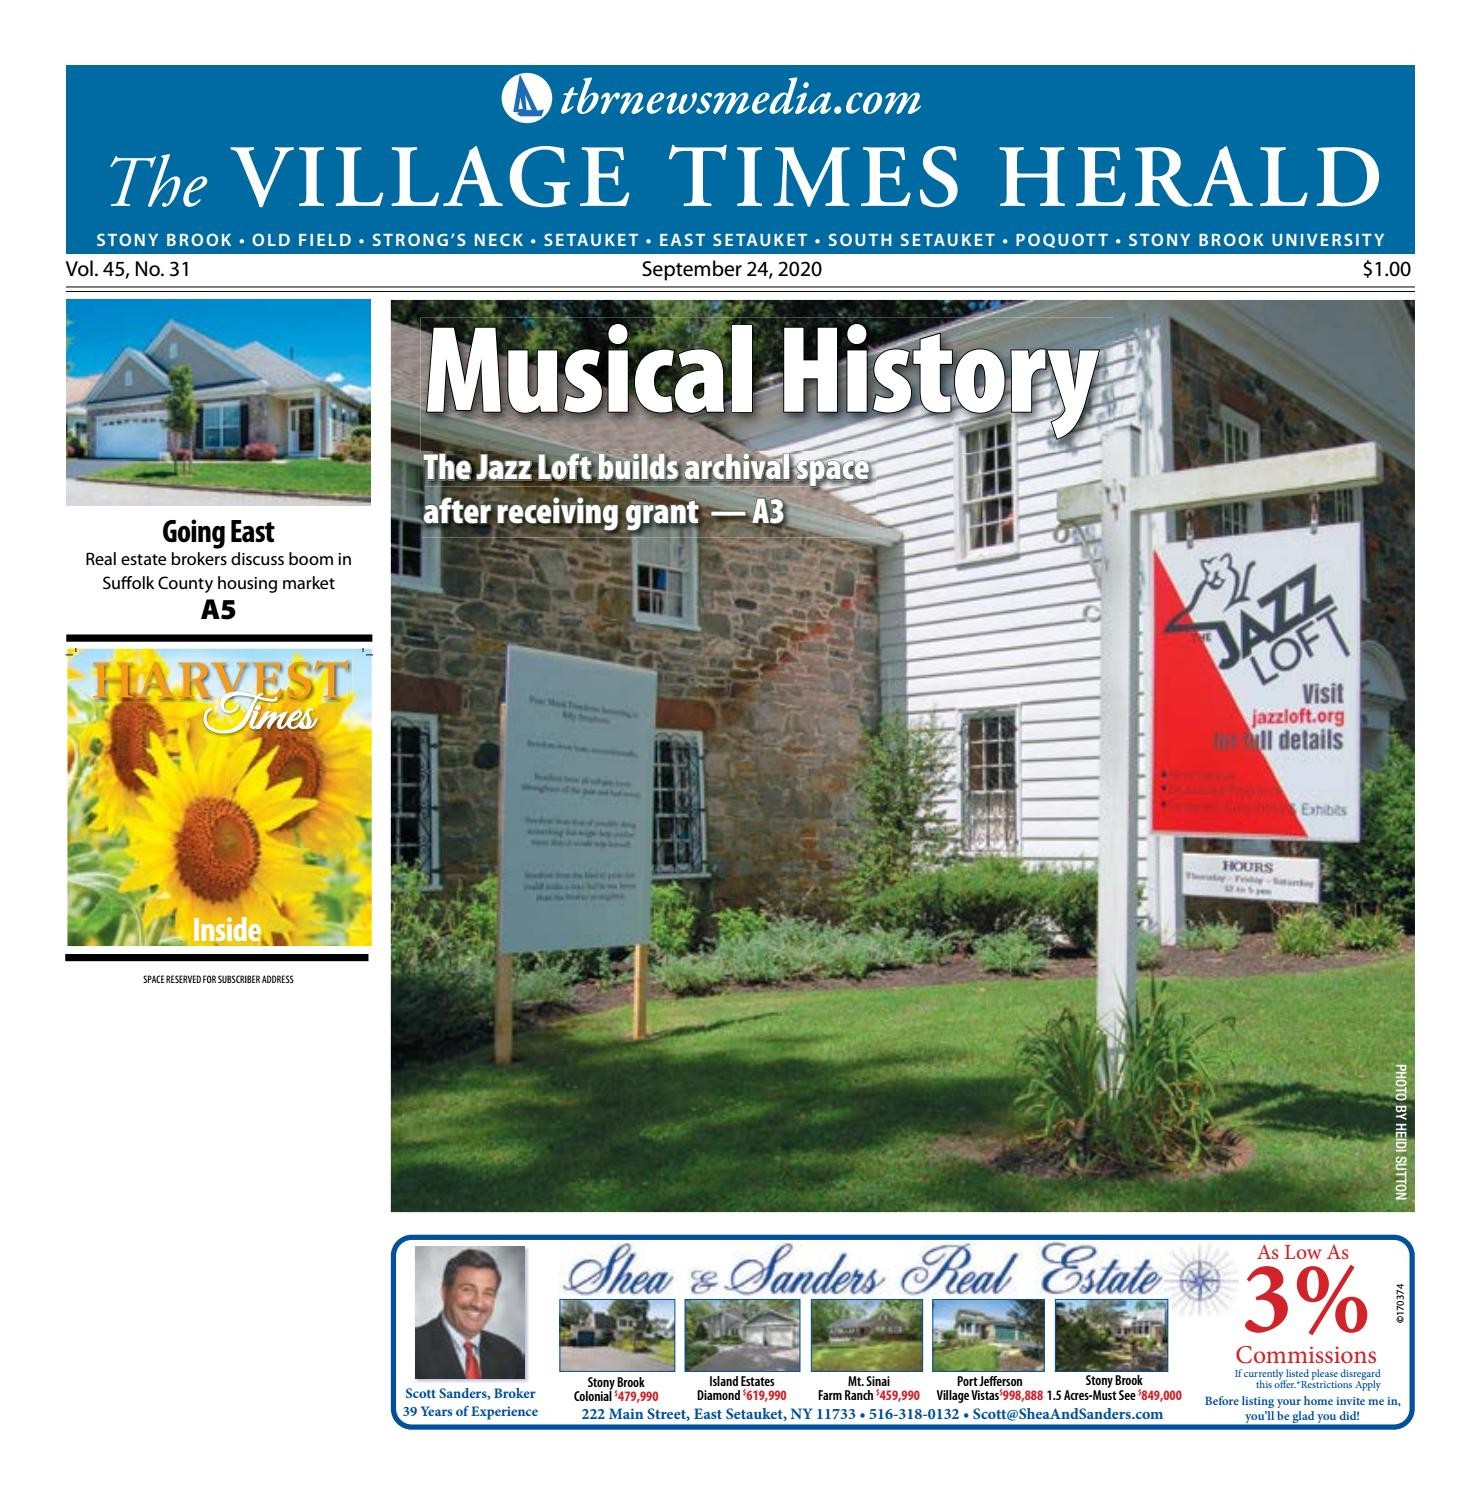 The Village Times Herald - September 24, 2020 by TBR News Media - issuu